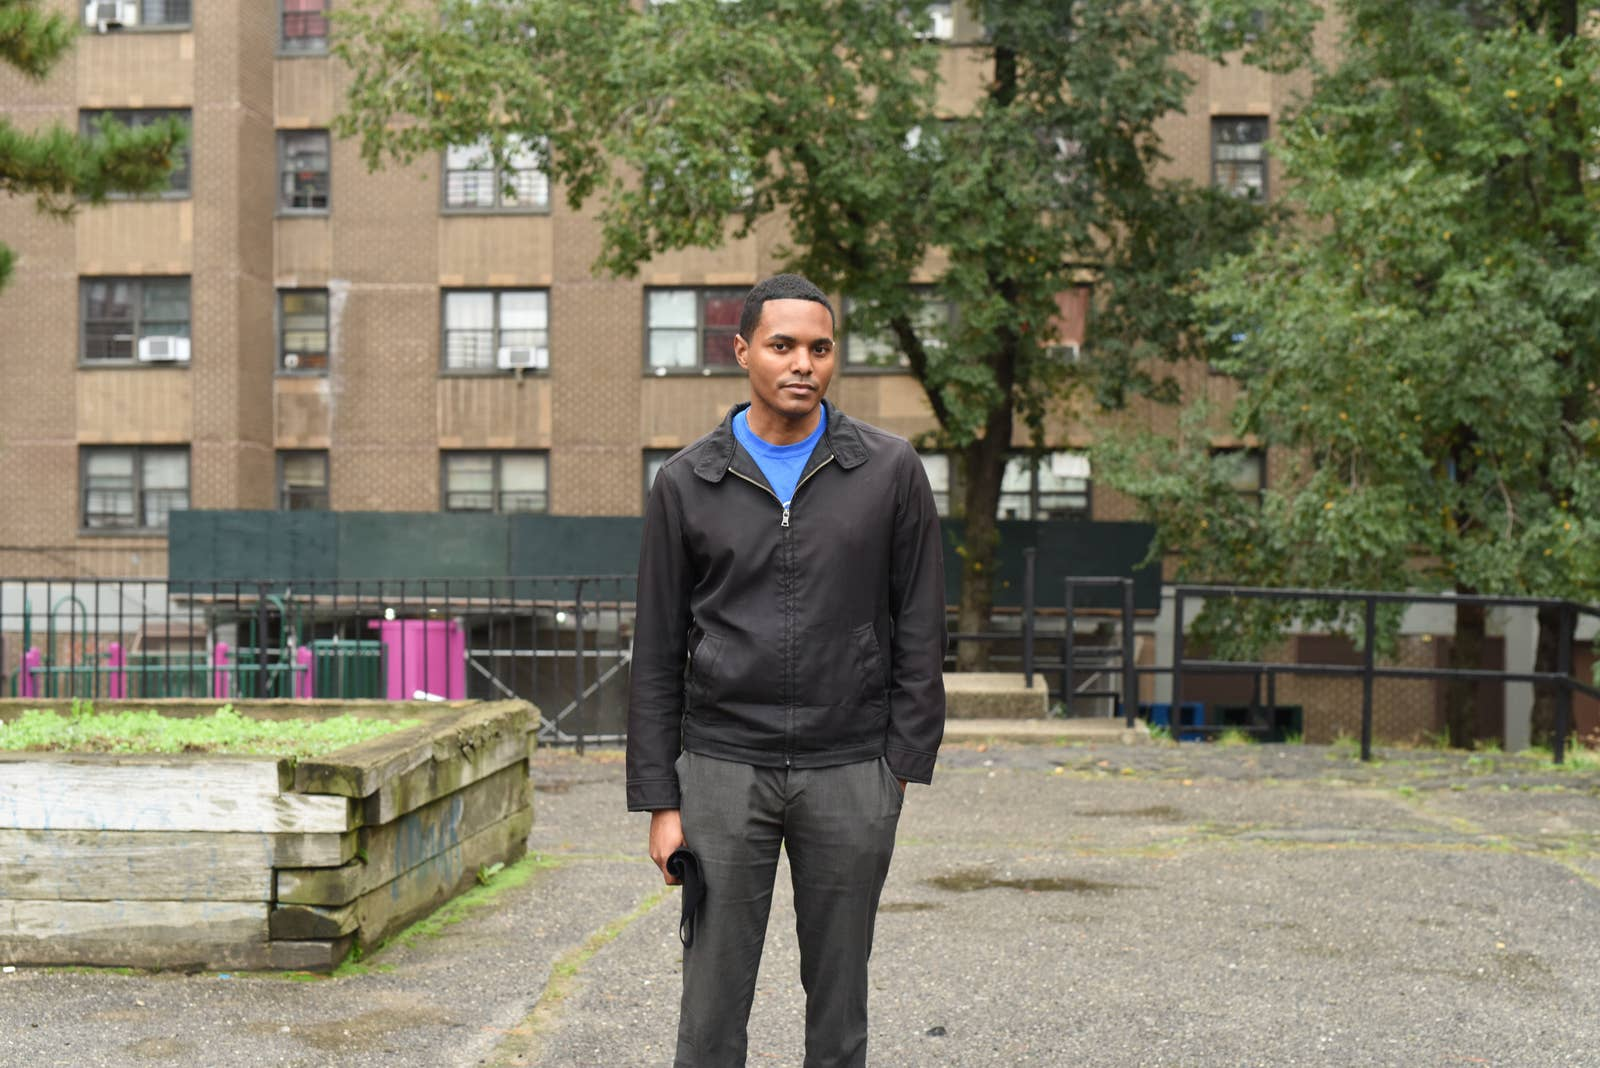 Torres stands in front of a housing project